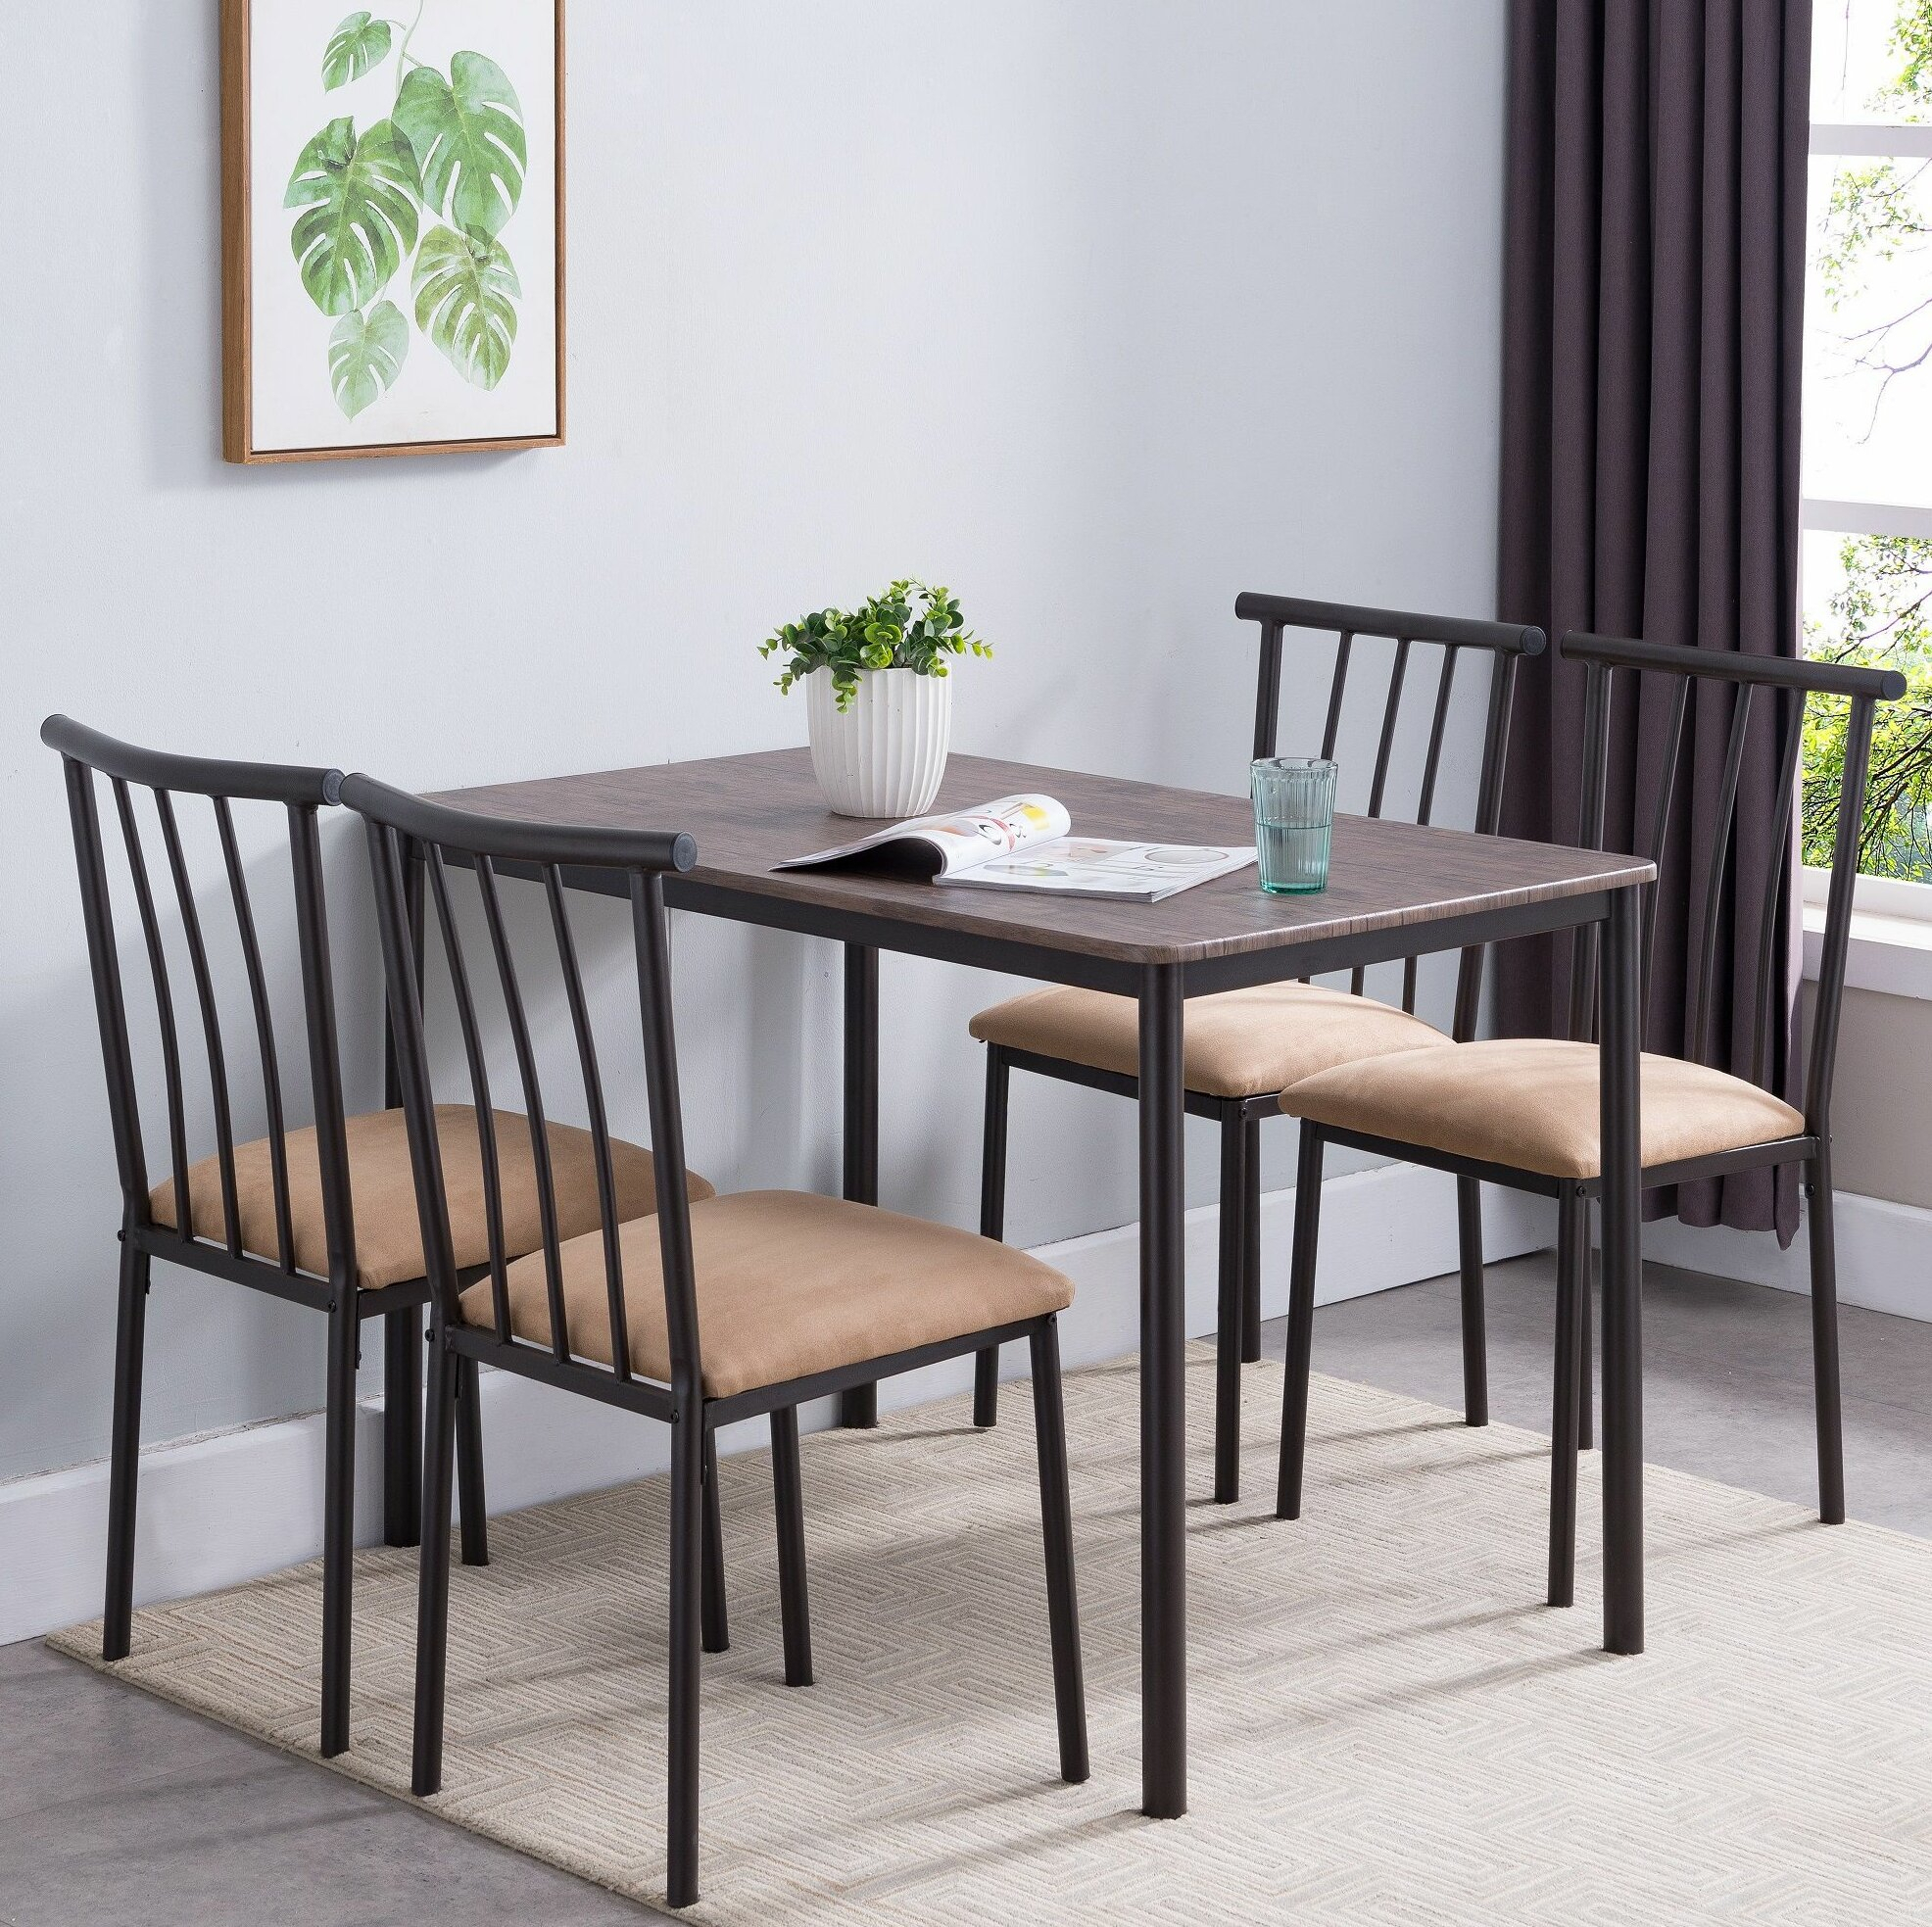 Stclair 5 Piece Dining Set Inside Best And Newest Casiano 5 Piece Dining Sets (Image 17 of 20)